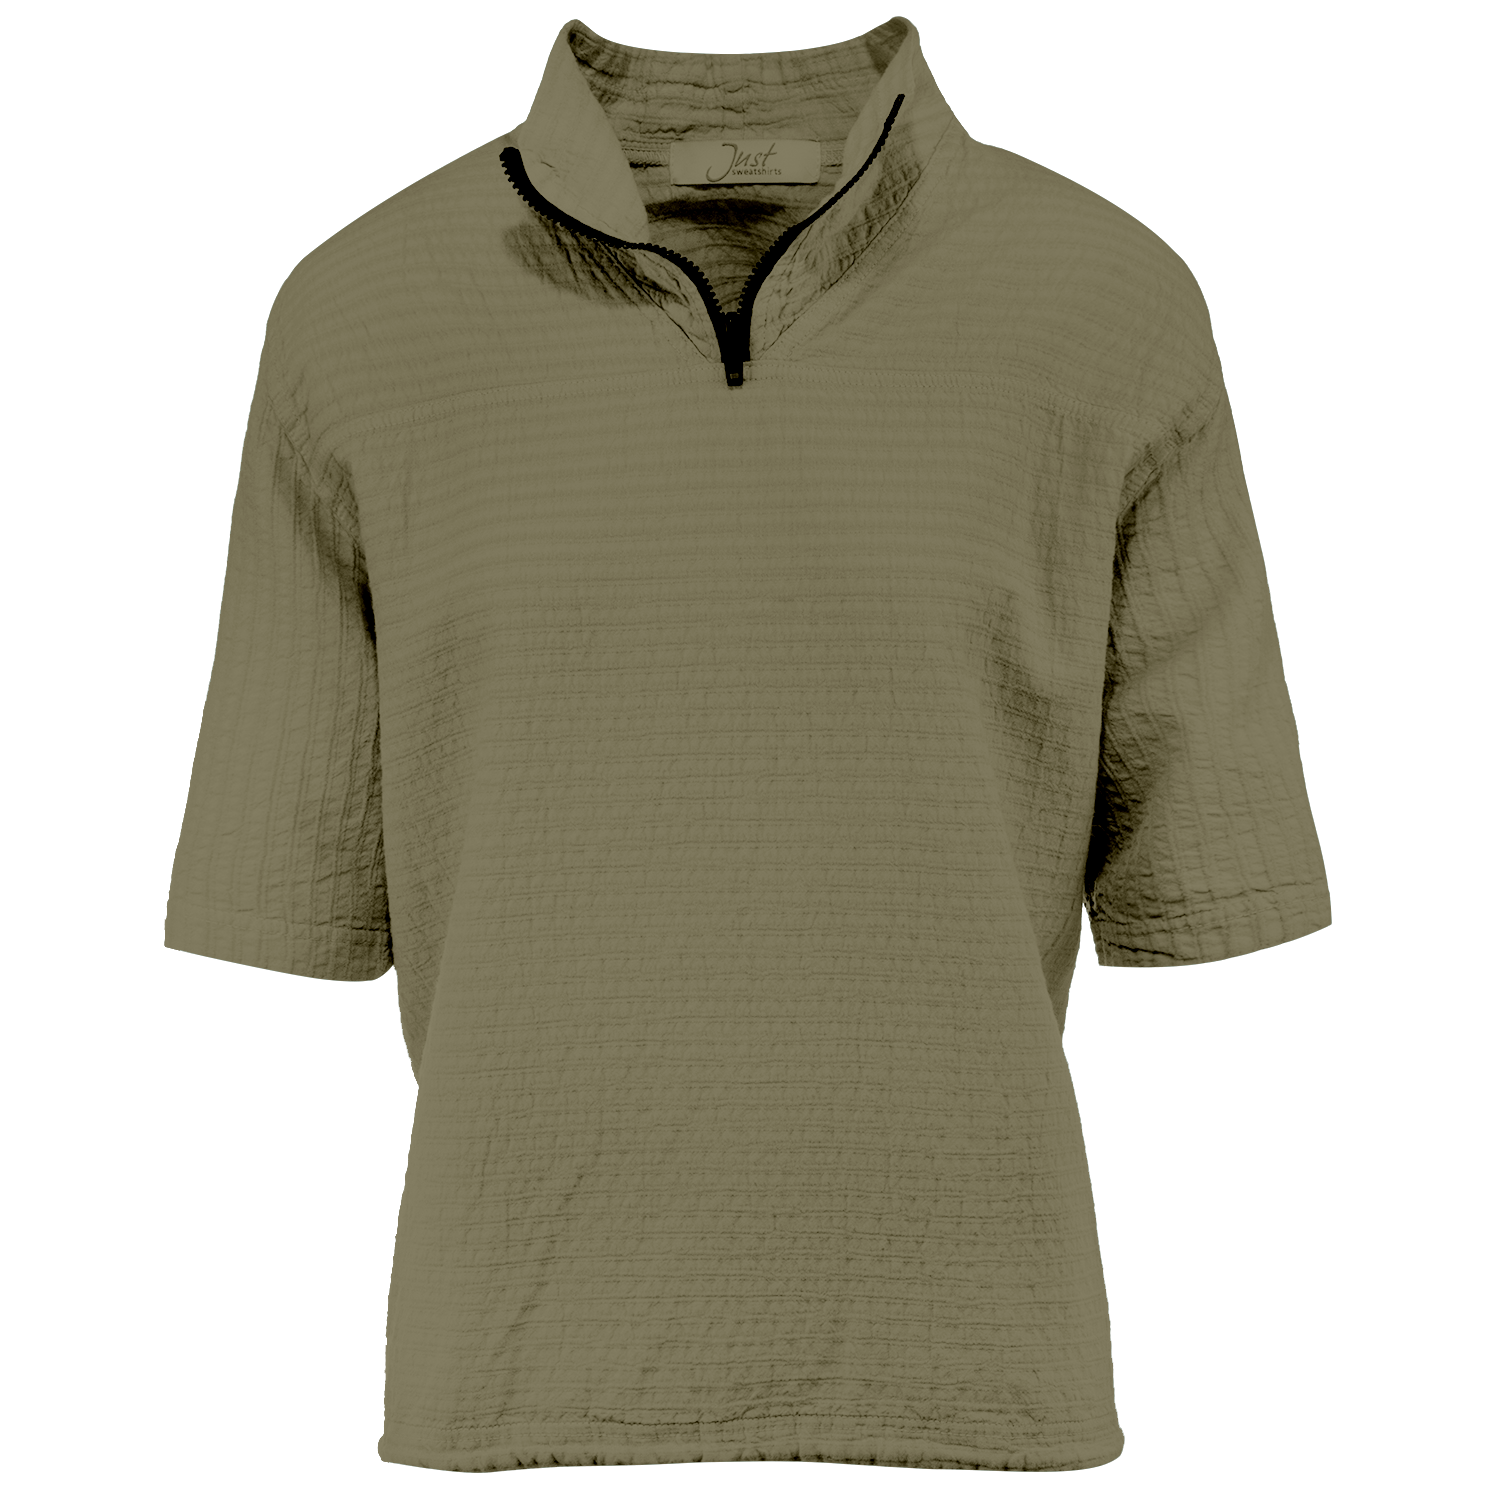 Ladies Mirage Cotton Half Zip Lightweight Top 100% Cotton Shade